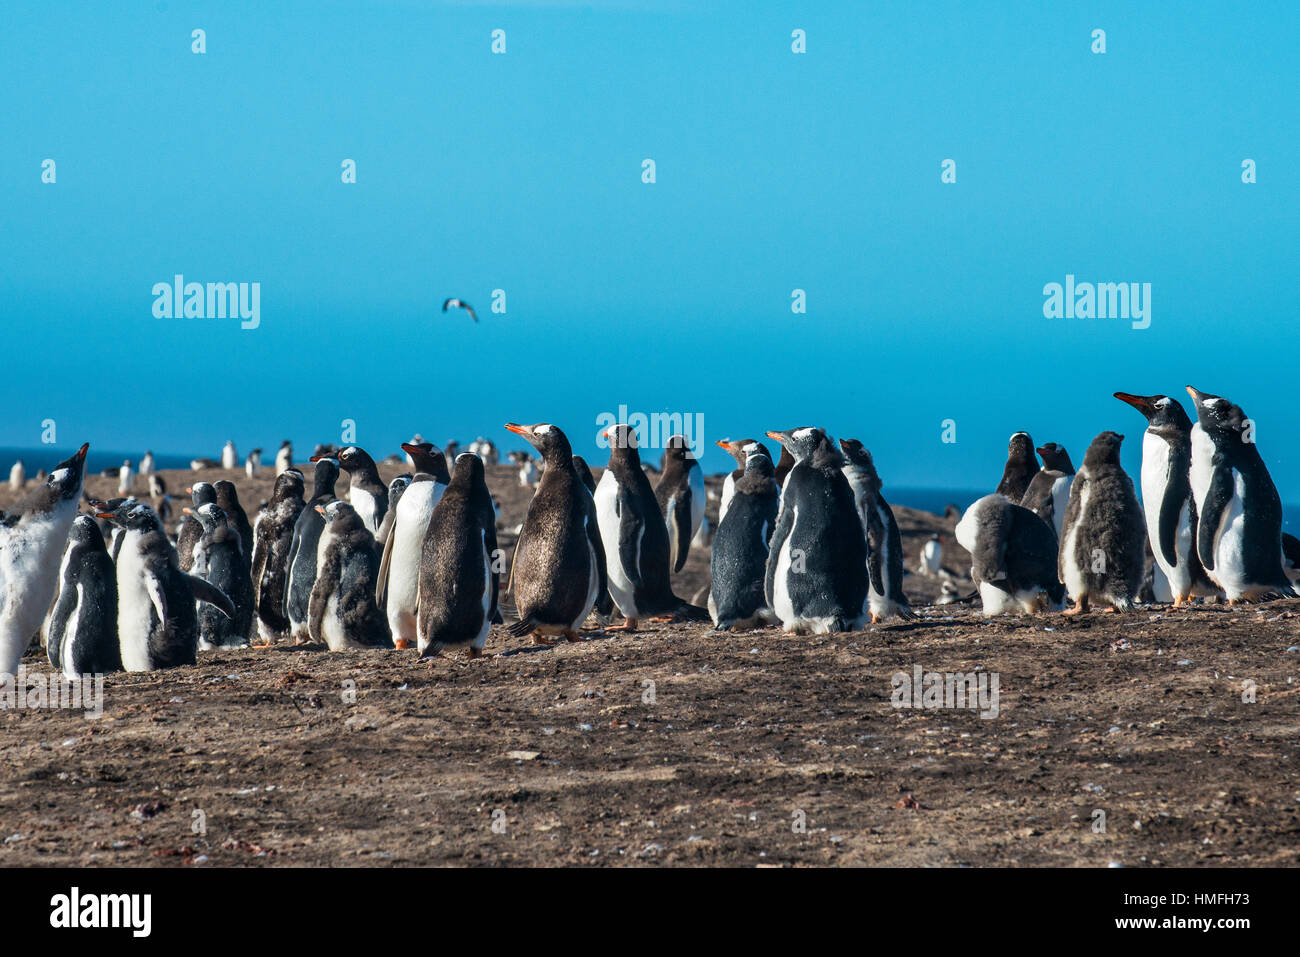 Long-tailed gentoo penguin colony (Pygoscelis papua), Saunders Island, Falklands, South America - Stock Image